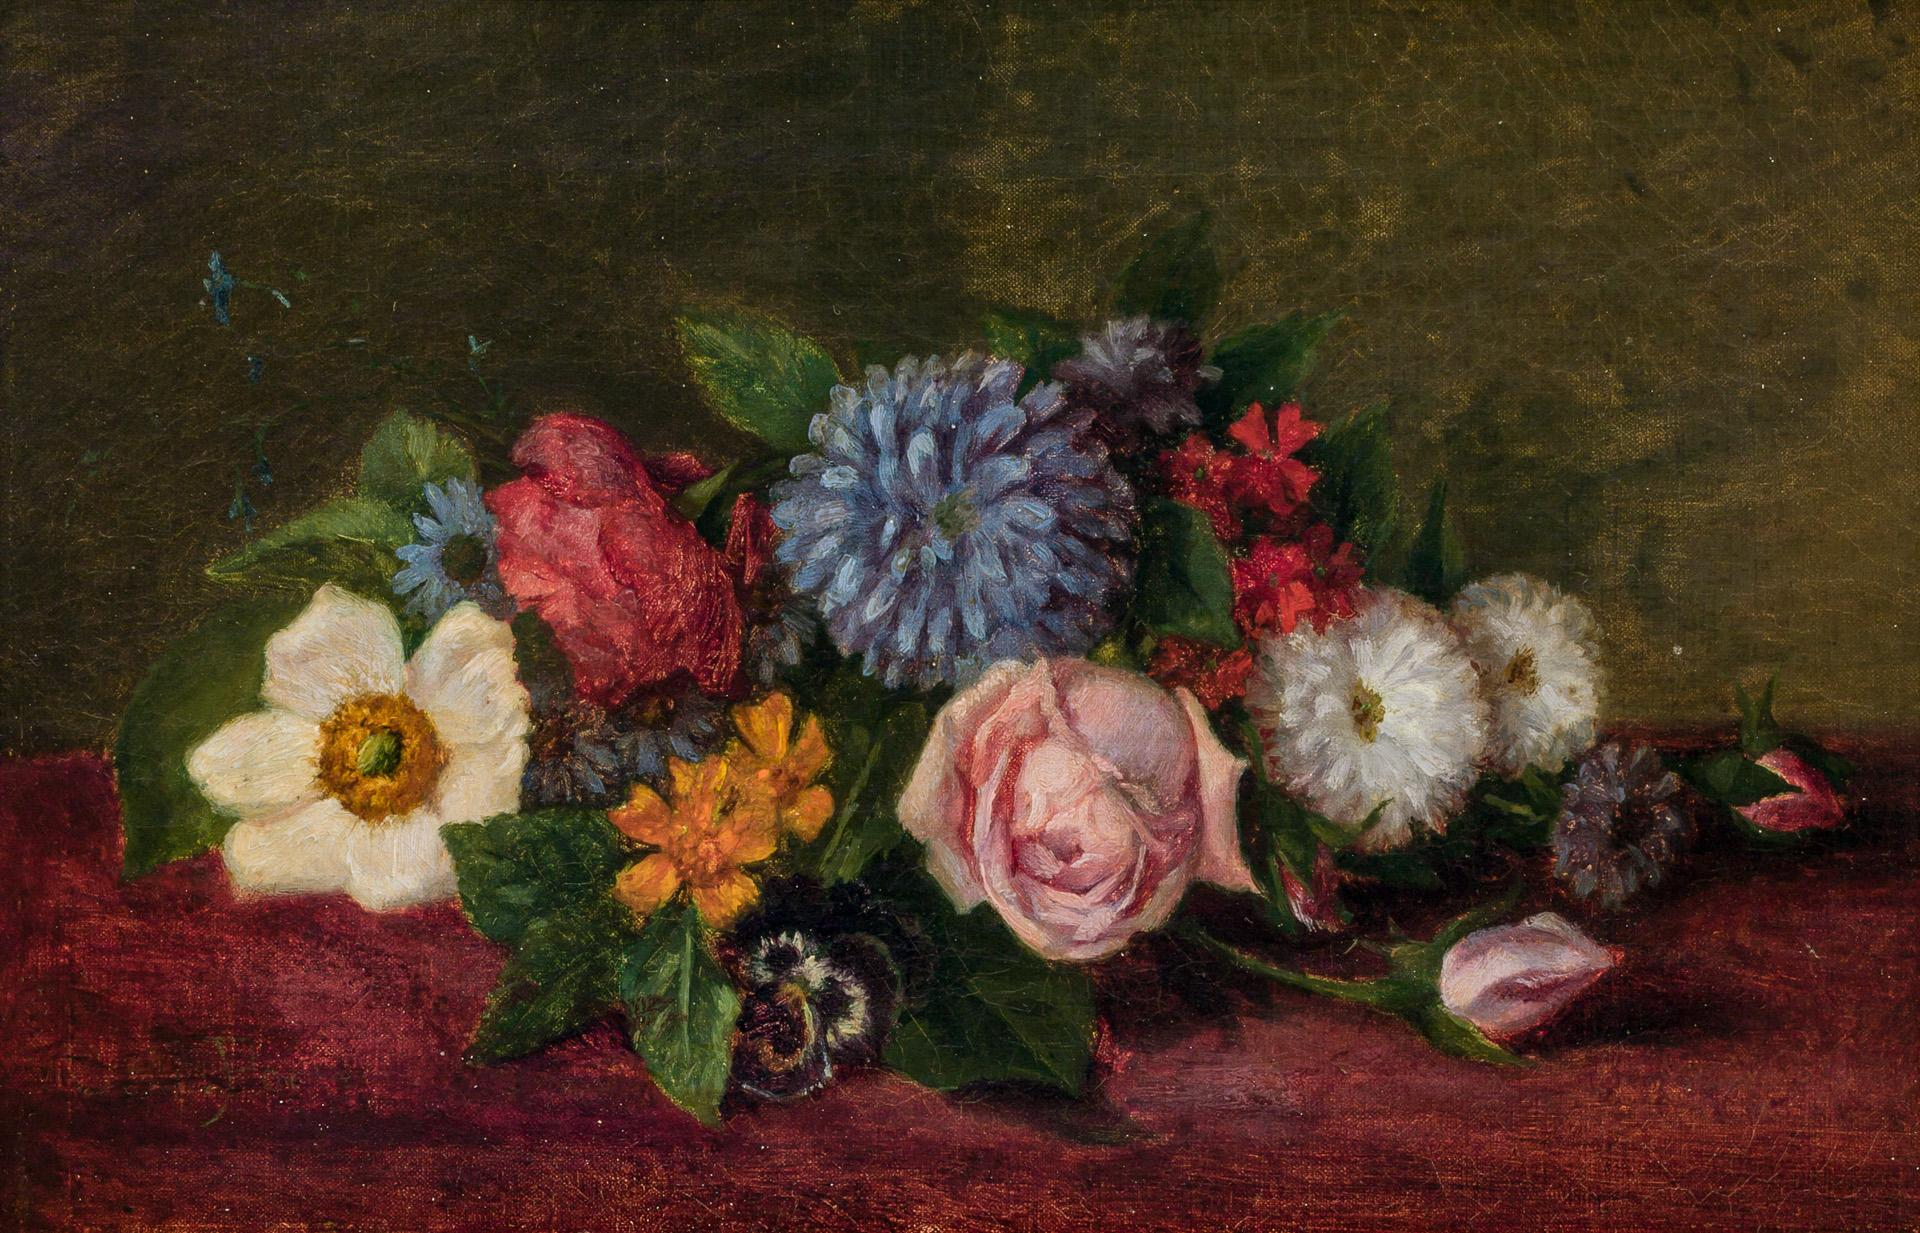 CHARLES ETHAN PORTER, American (1847-1923), Floral Still Life, oil on canvas, signed faintly lower left, 7 1/2 x 11 1/2 inches